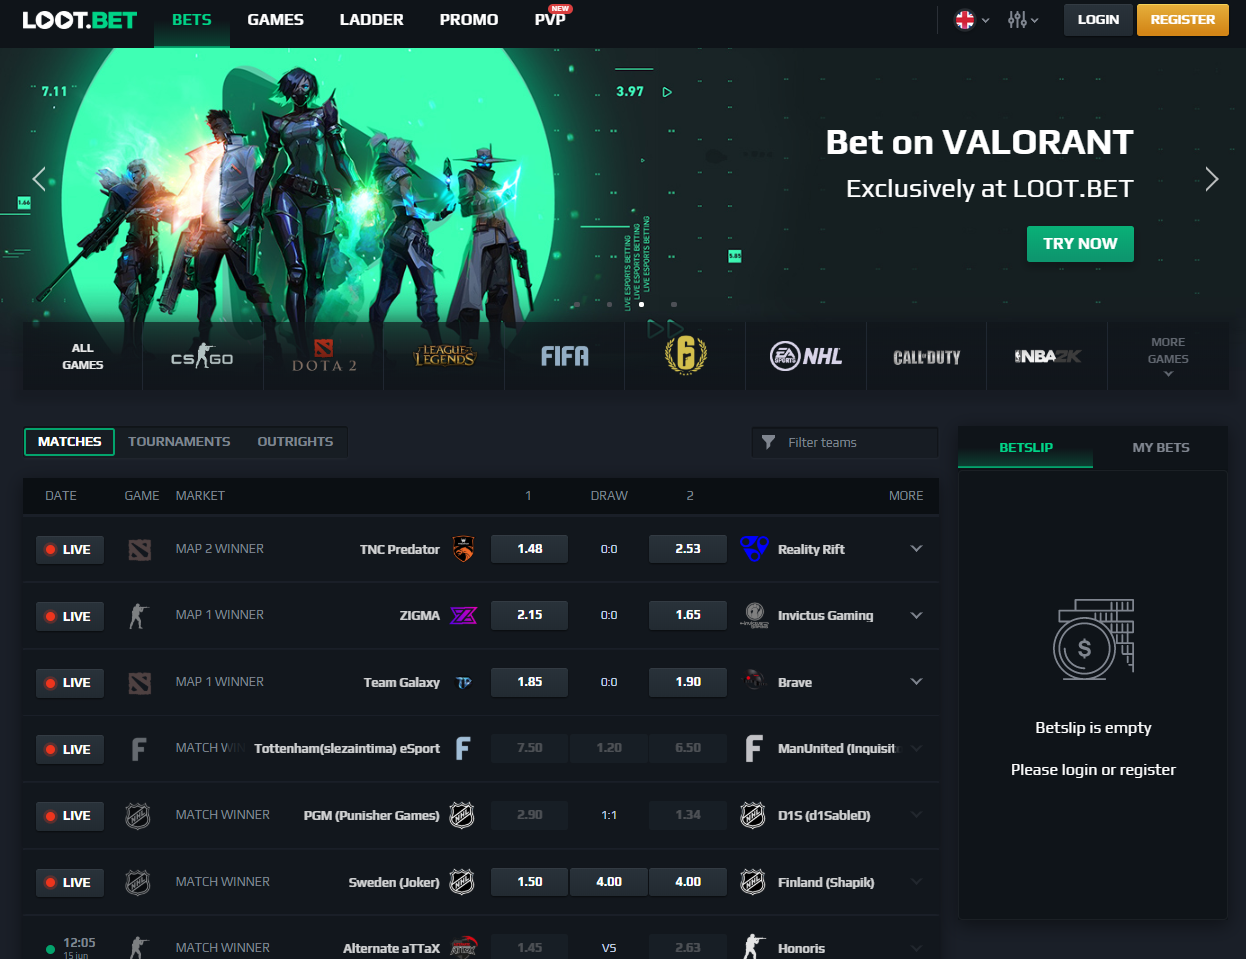 lootbet 1 - The Right Place to Bet on Esports with Bitcoin and Ethereum - LOOT.BET Review